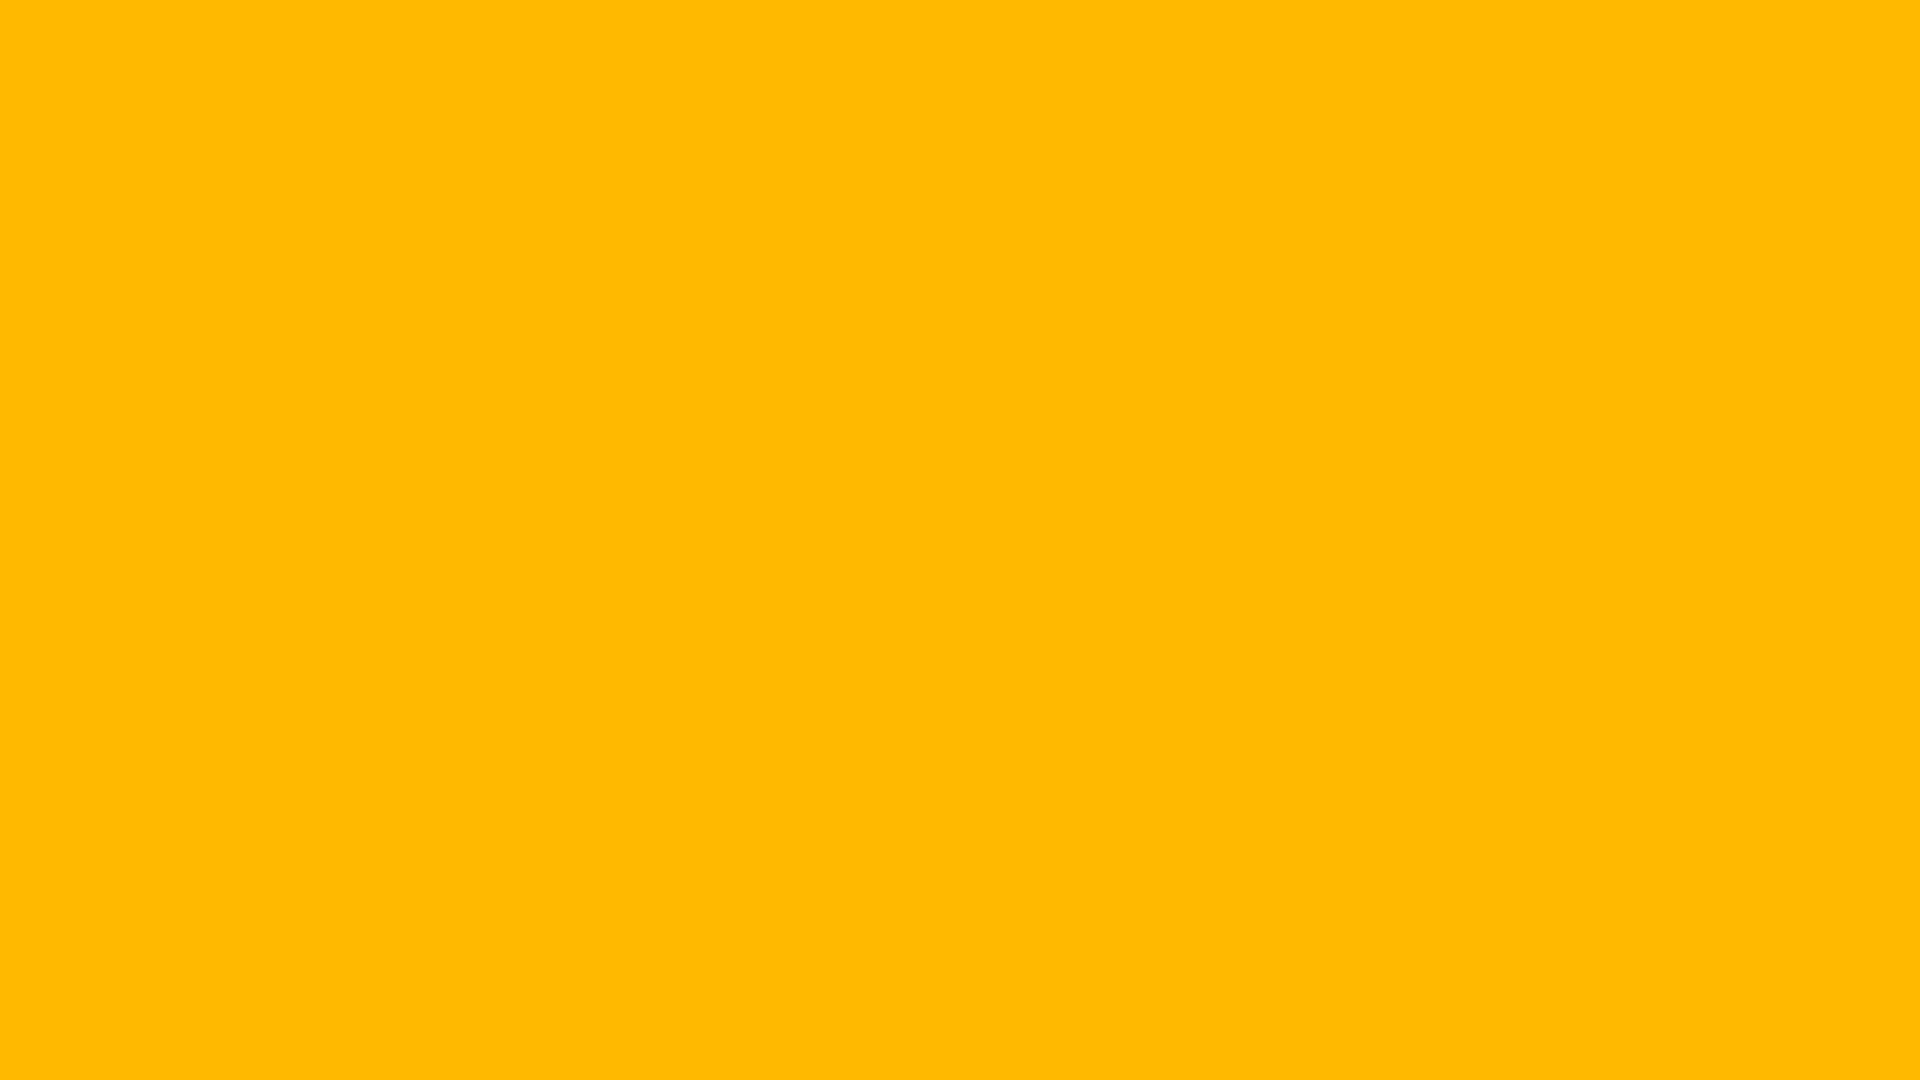 1920x1080 Selective Yellow Solid Color Background